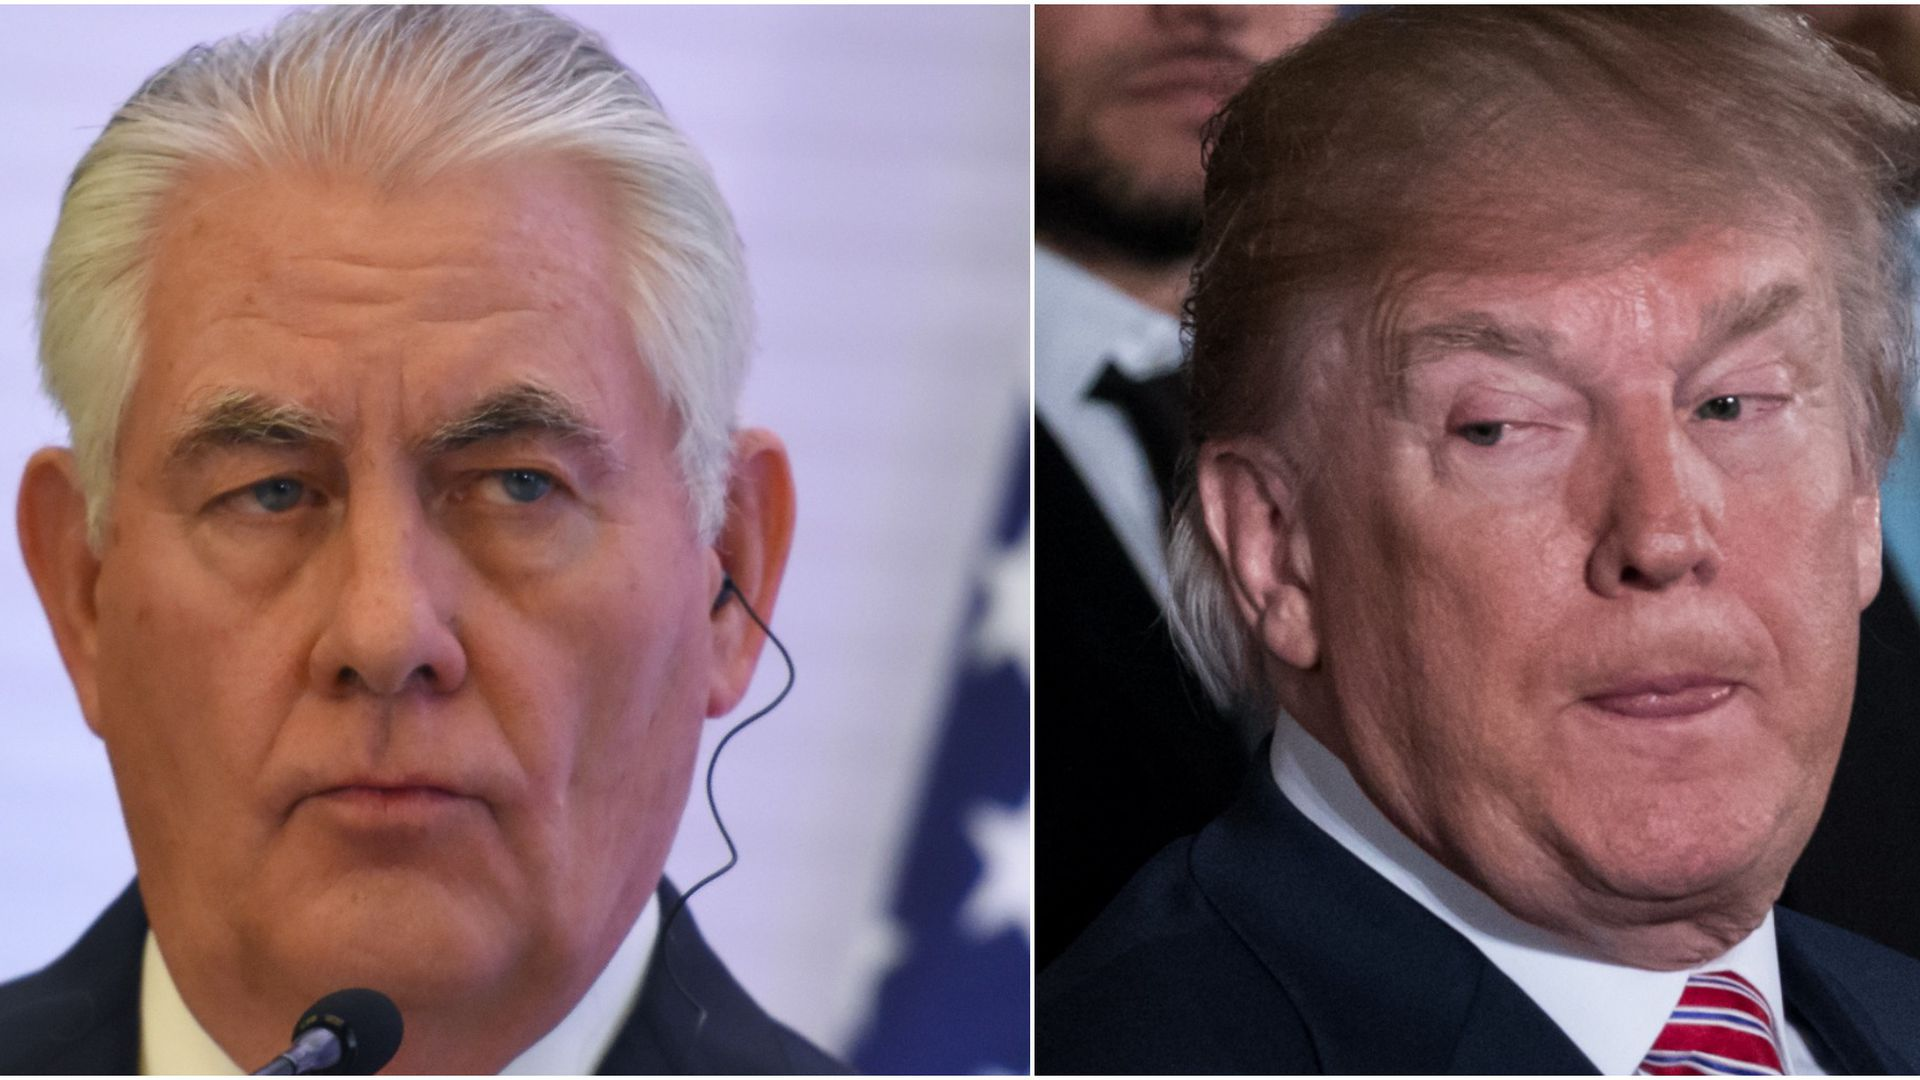 Rex Tillerson looking out of the corner of his eye and Donald Trump looking out of the corner of his eye